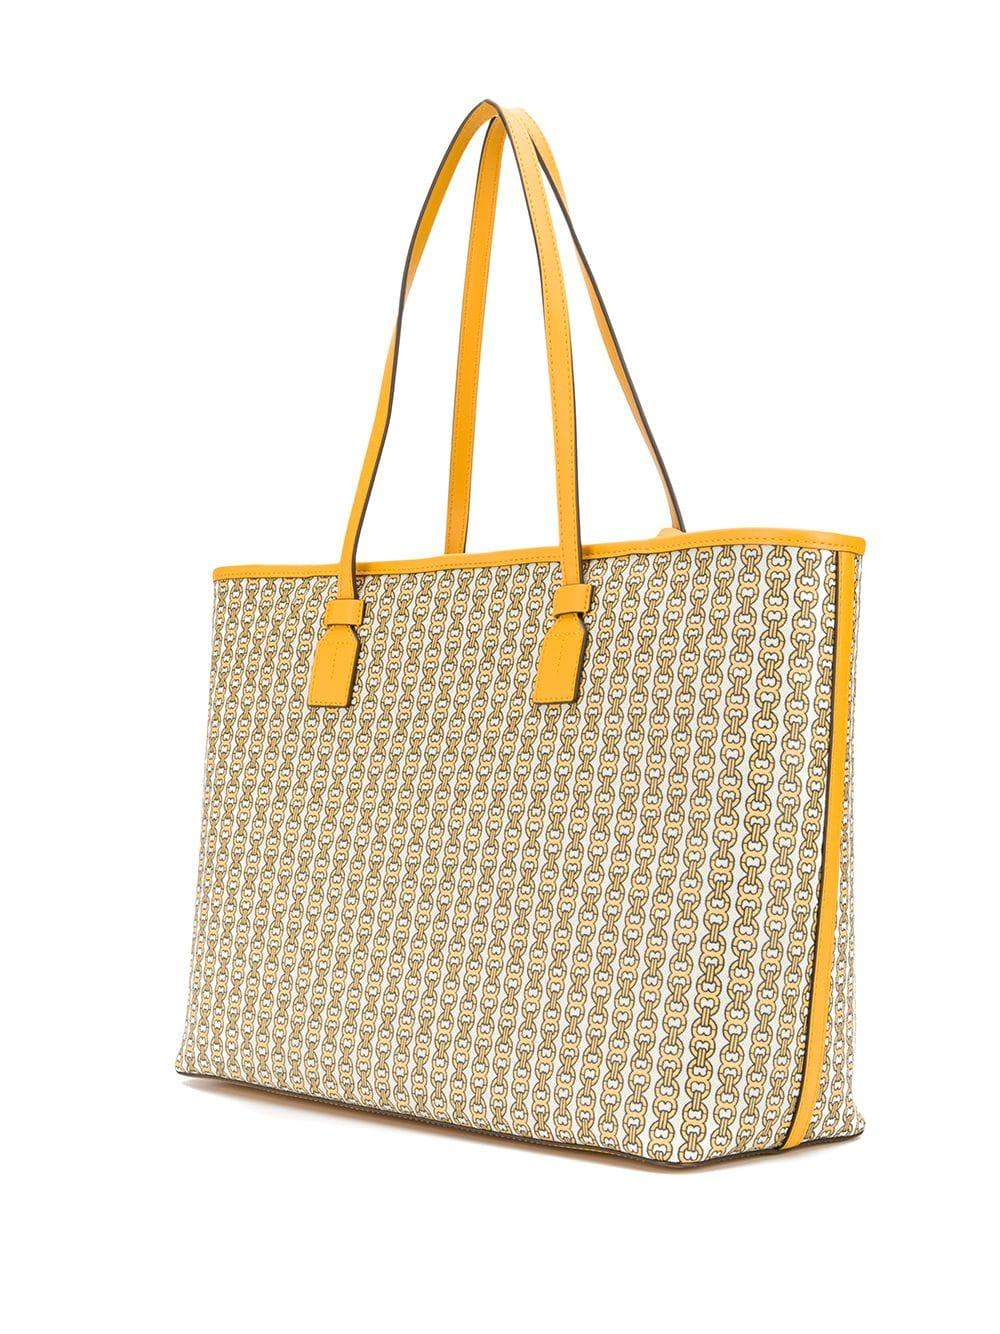 41e993d3ffb1 Tory Burch Tote Bag in Yellow - Lyst